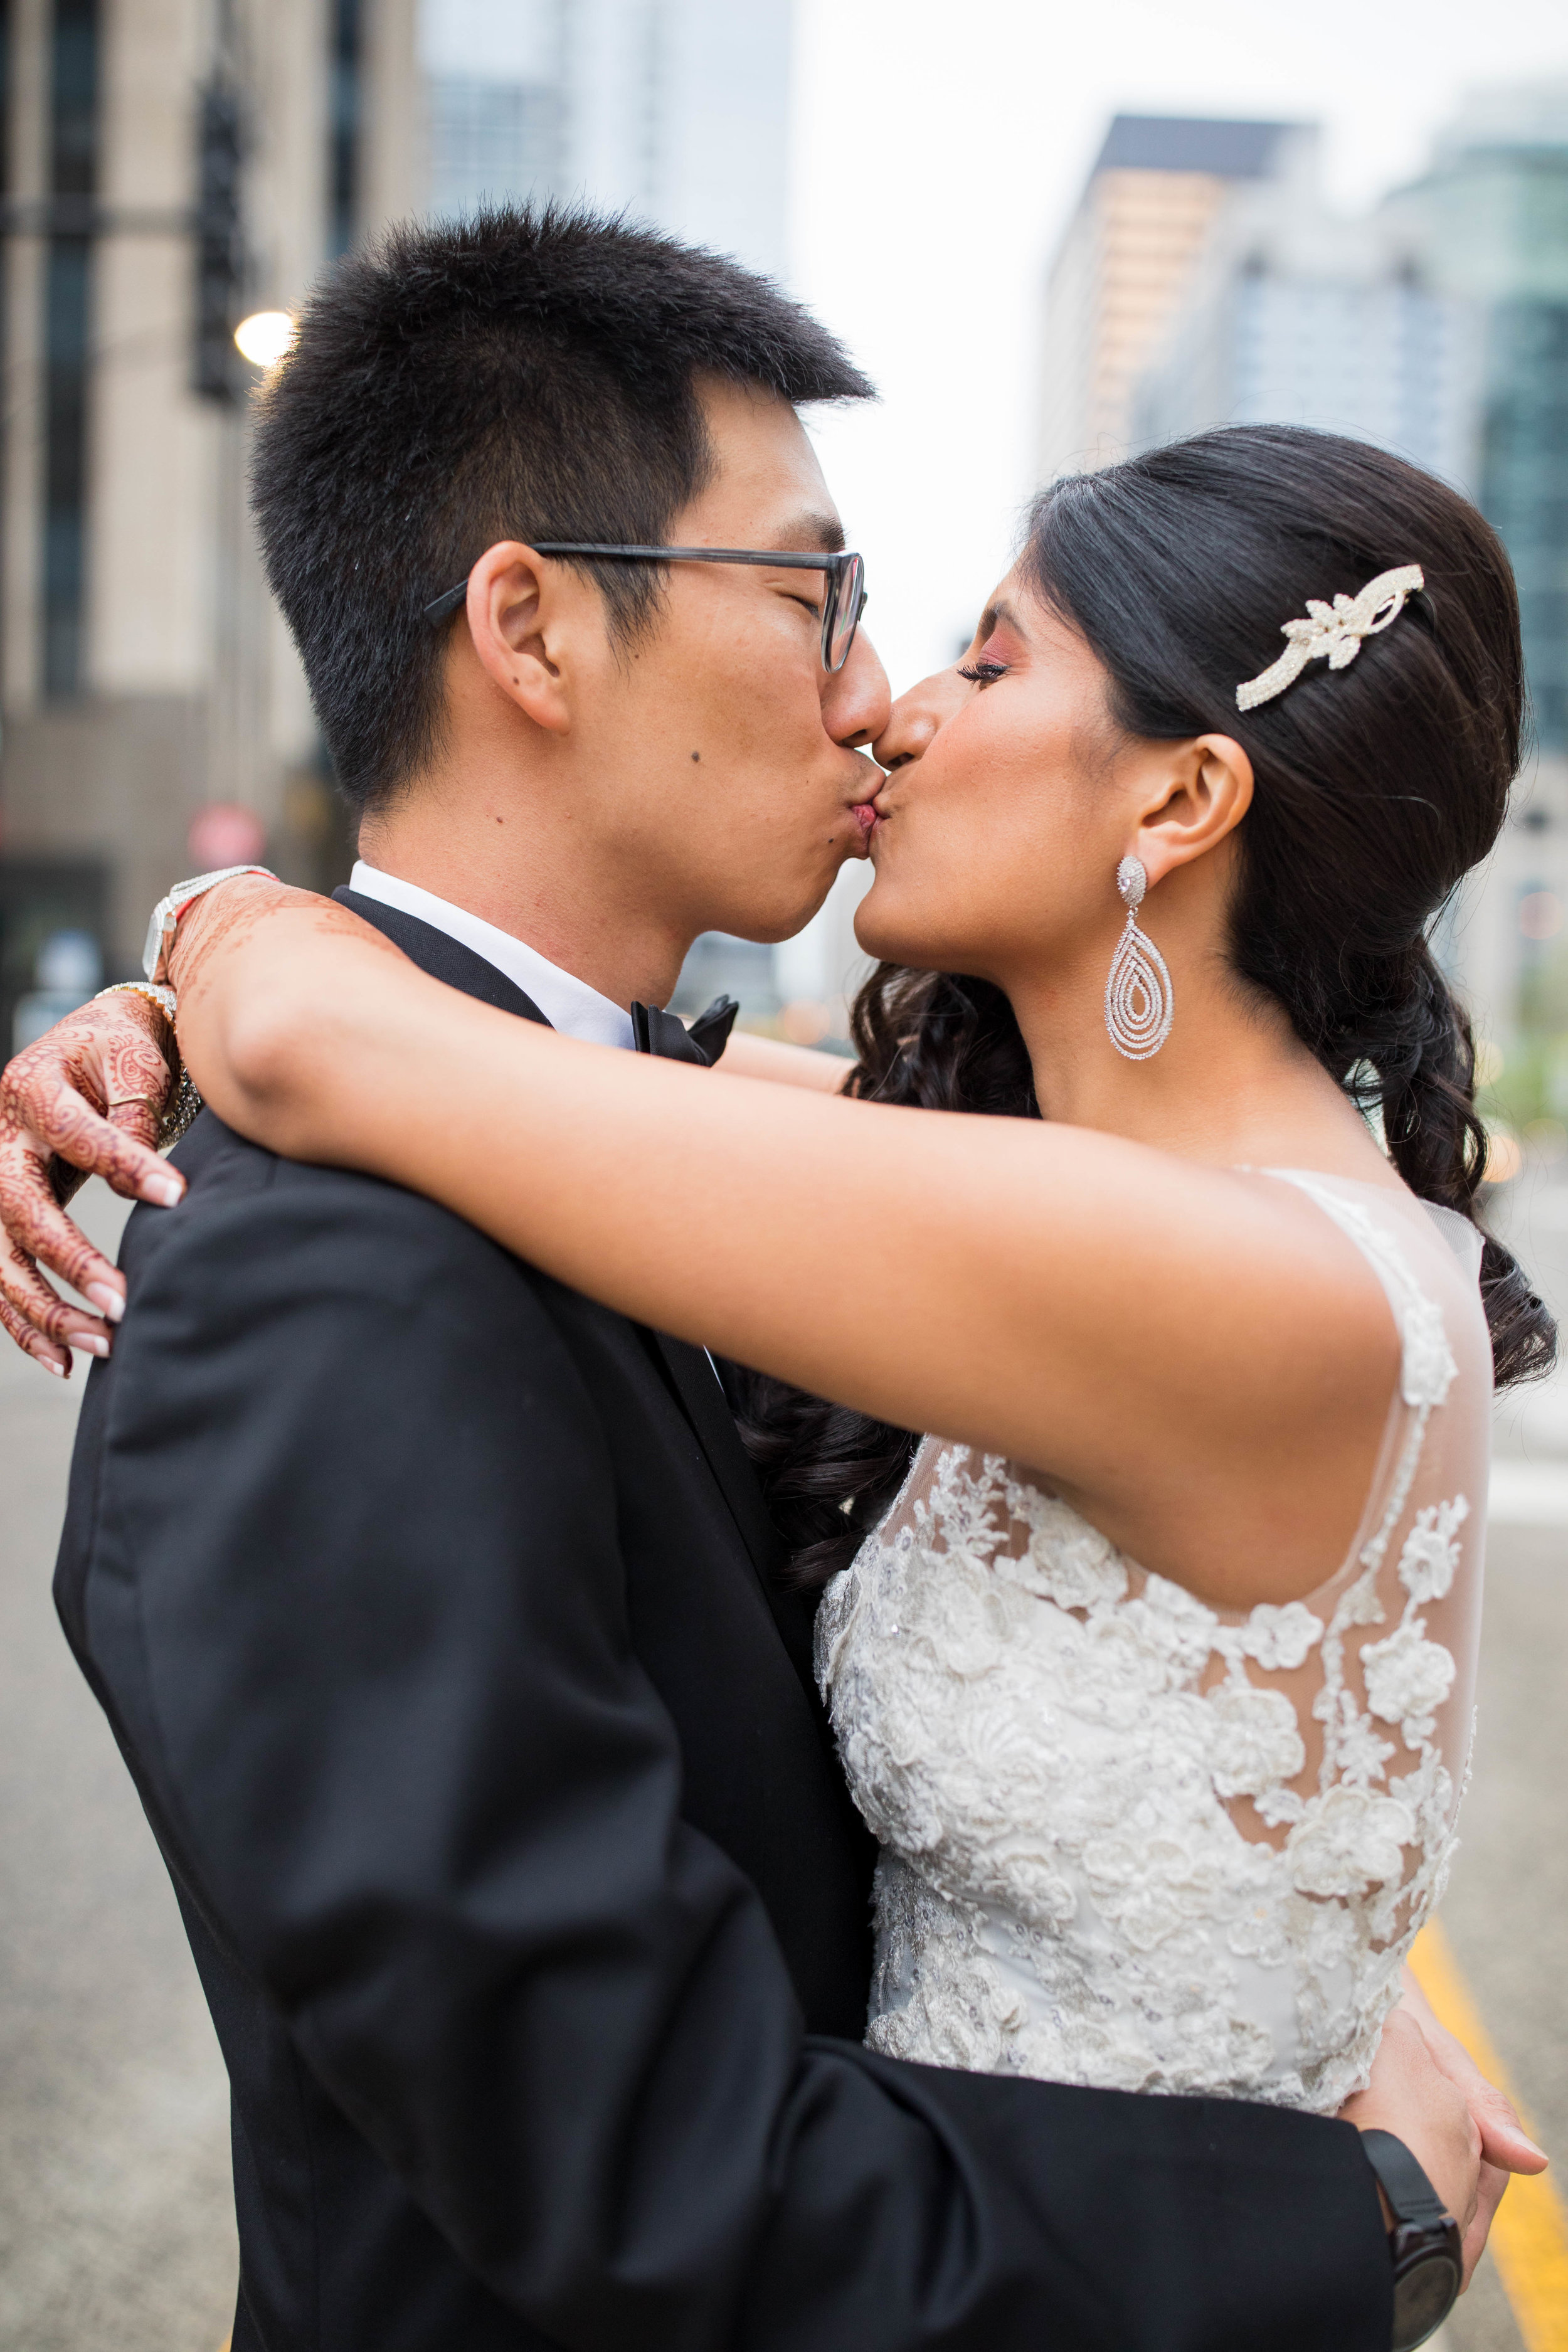 LeCapeWeddings - Chicago South Asian Wedding -100.jpg